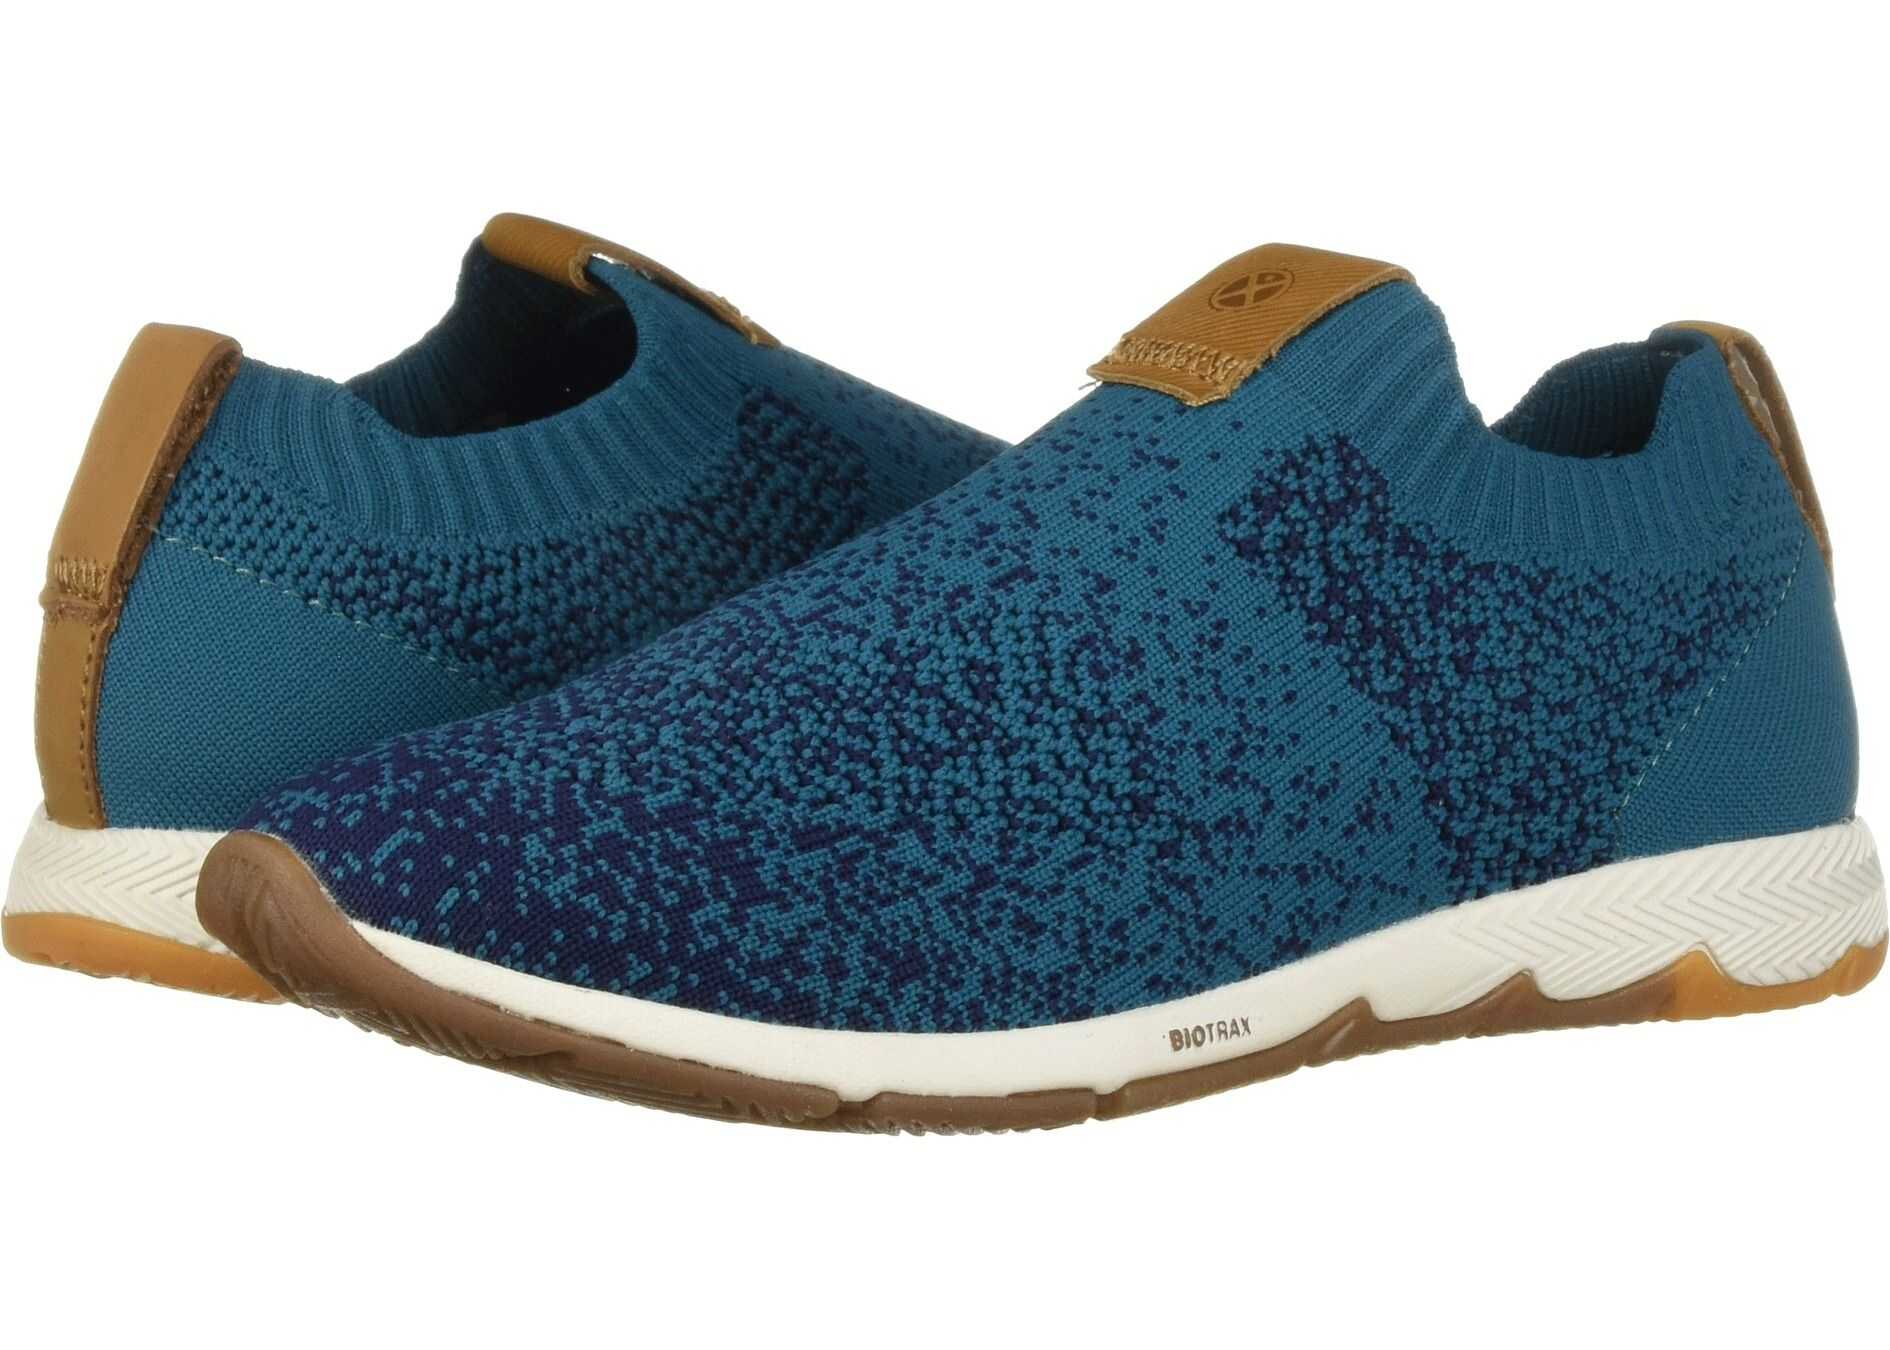 Hush Puppies Cesky Knit Slip-On Lagoon Knit